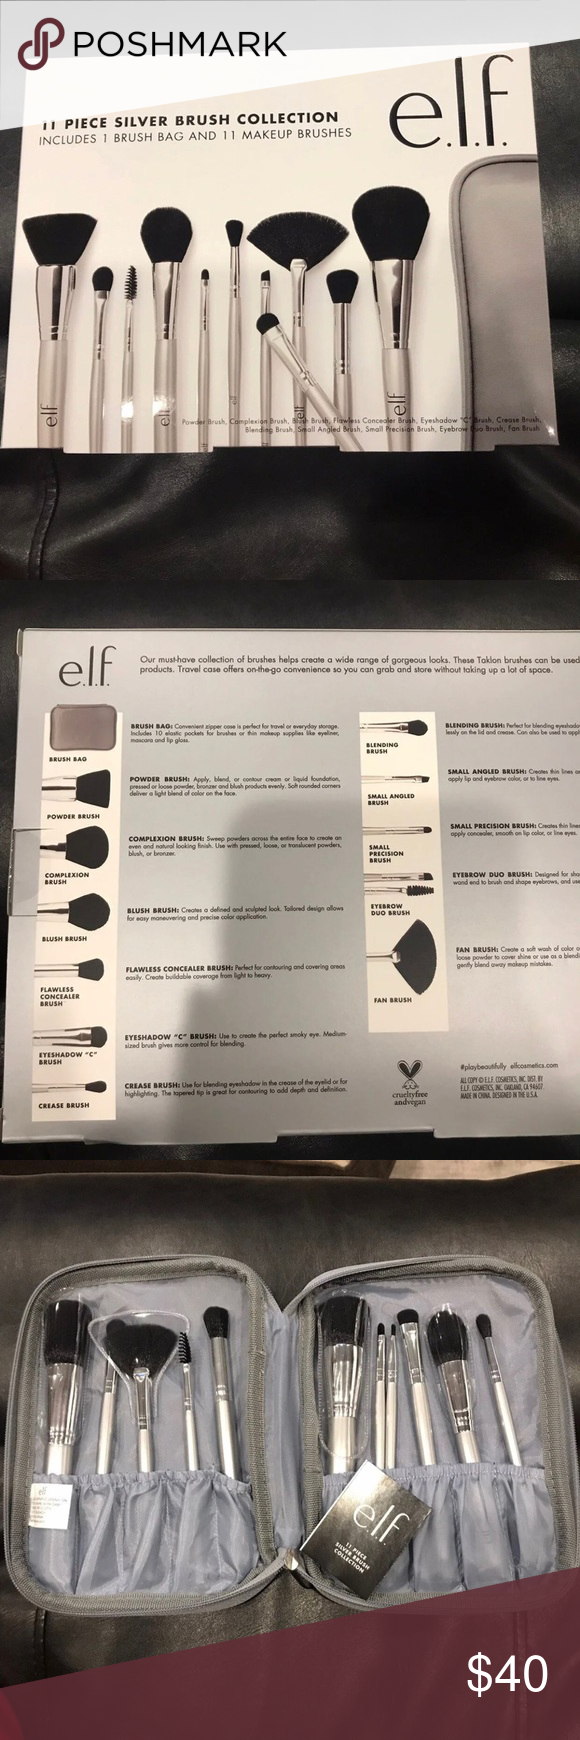 Elf cosmetic 11 piece brush set New in box Great gift idea Lovely silver colorbox